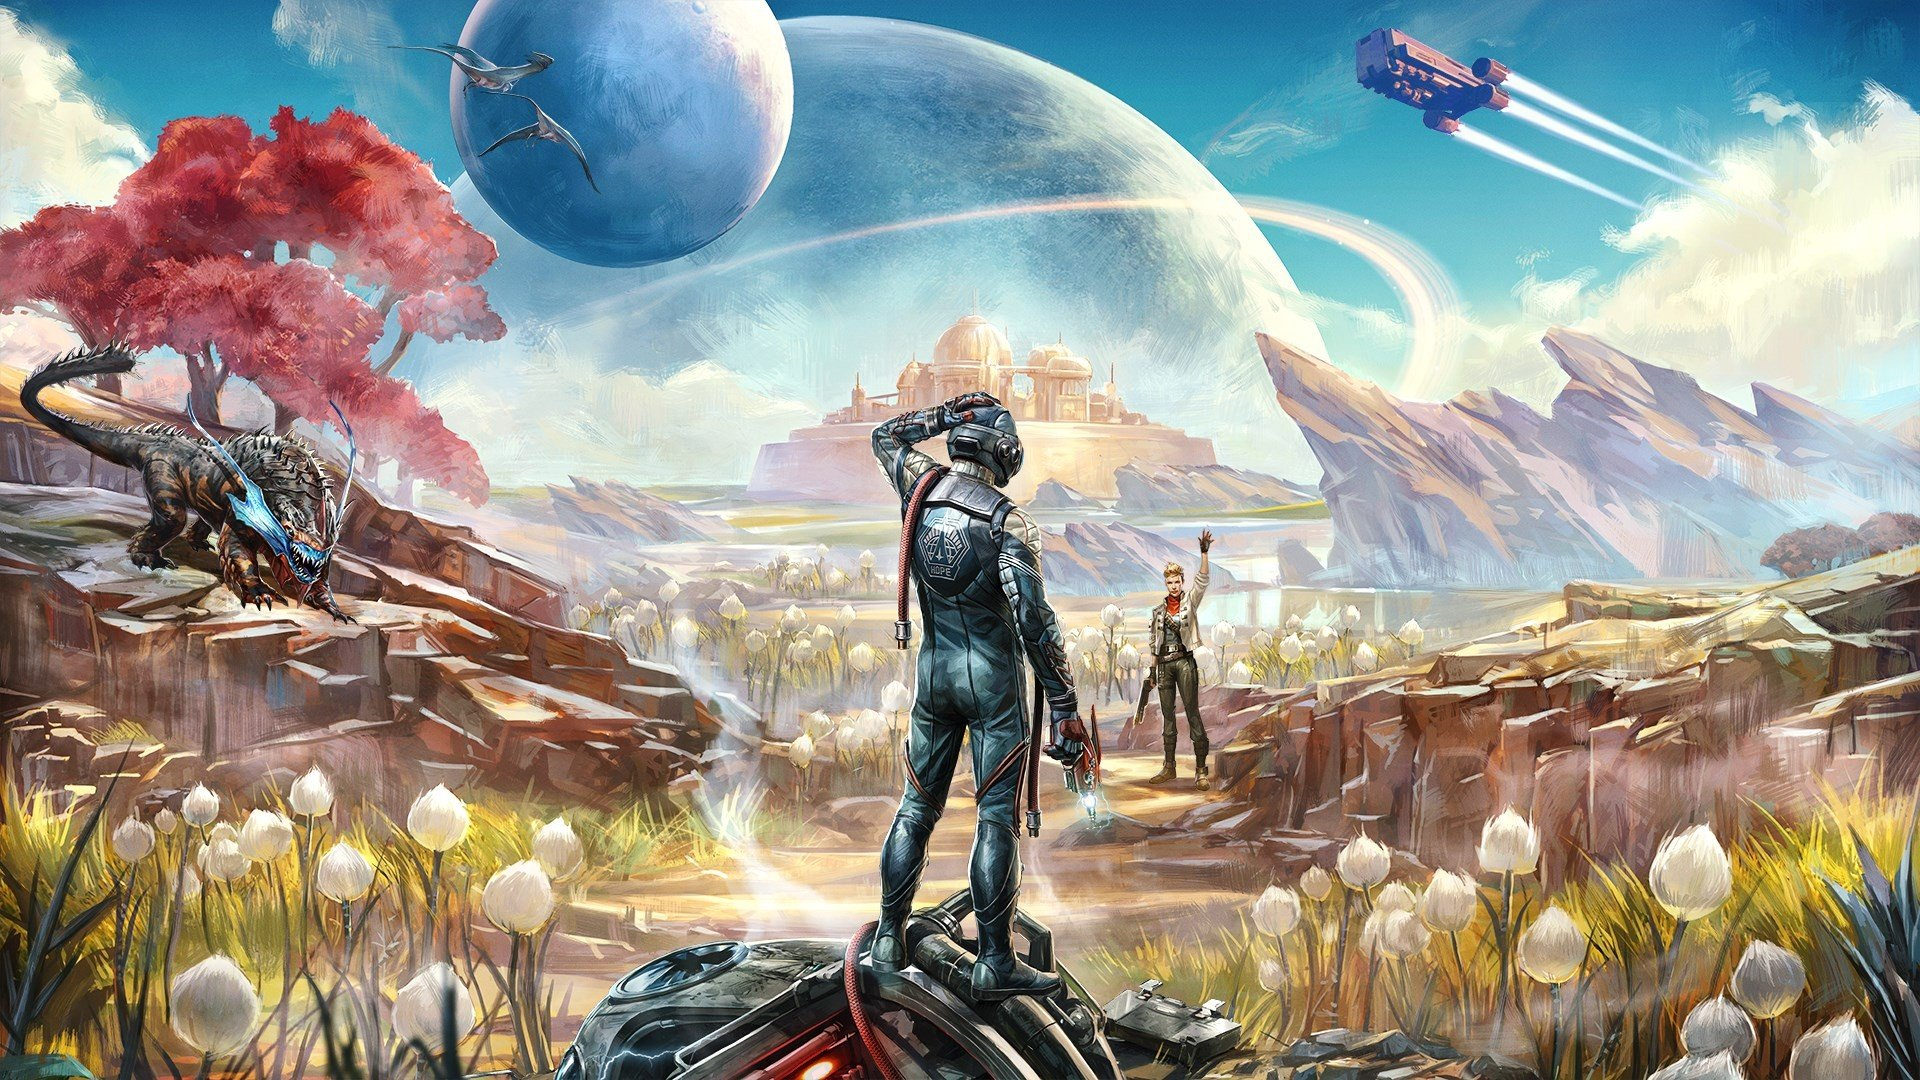 Who to give the Module to in The Outer Worlds